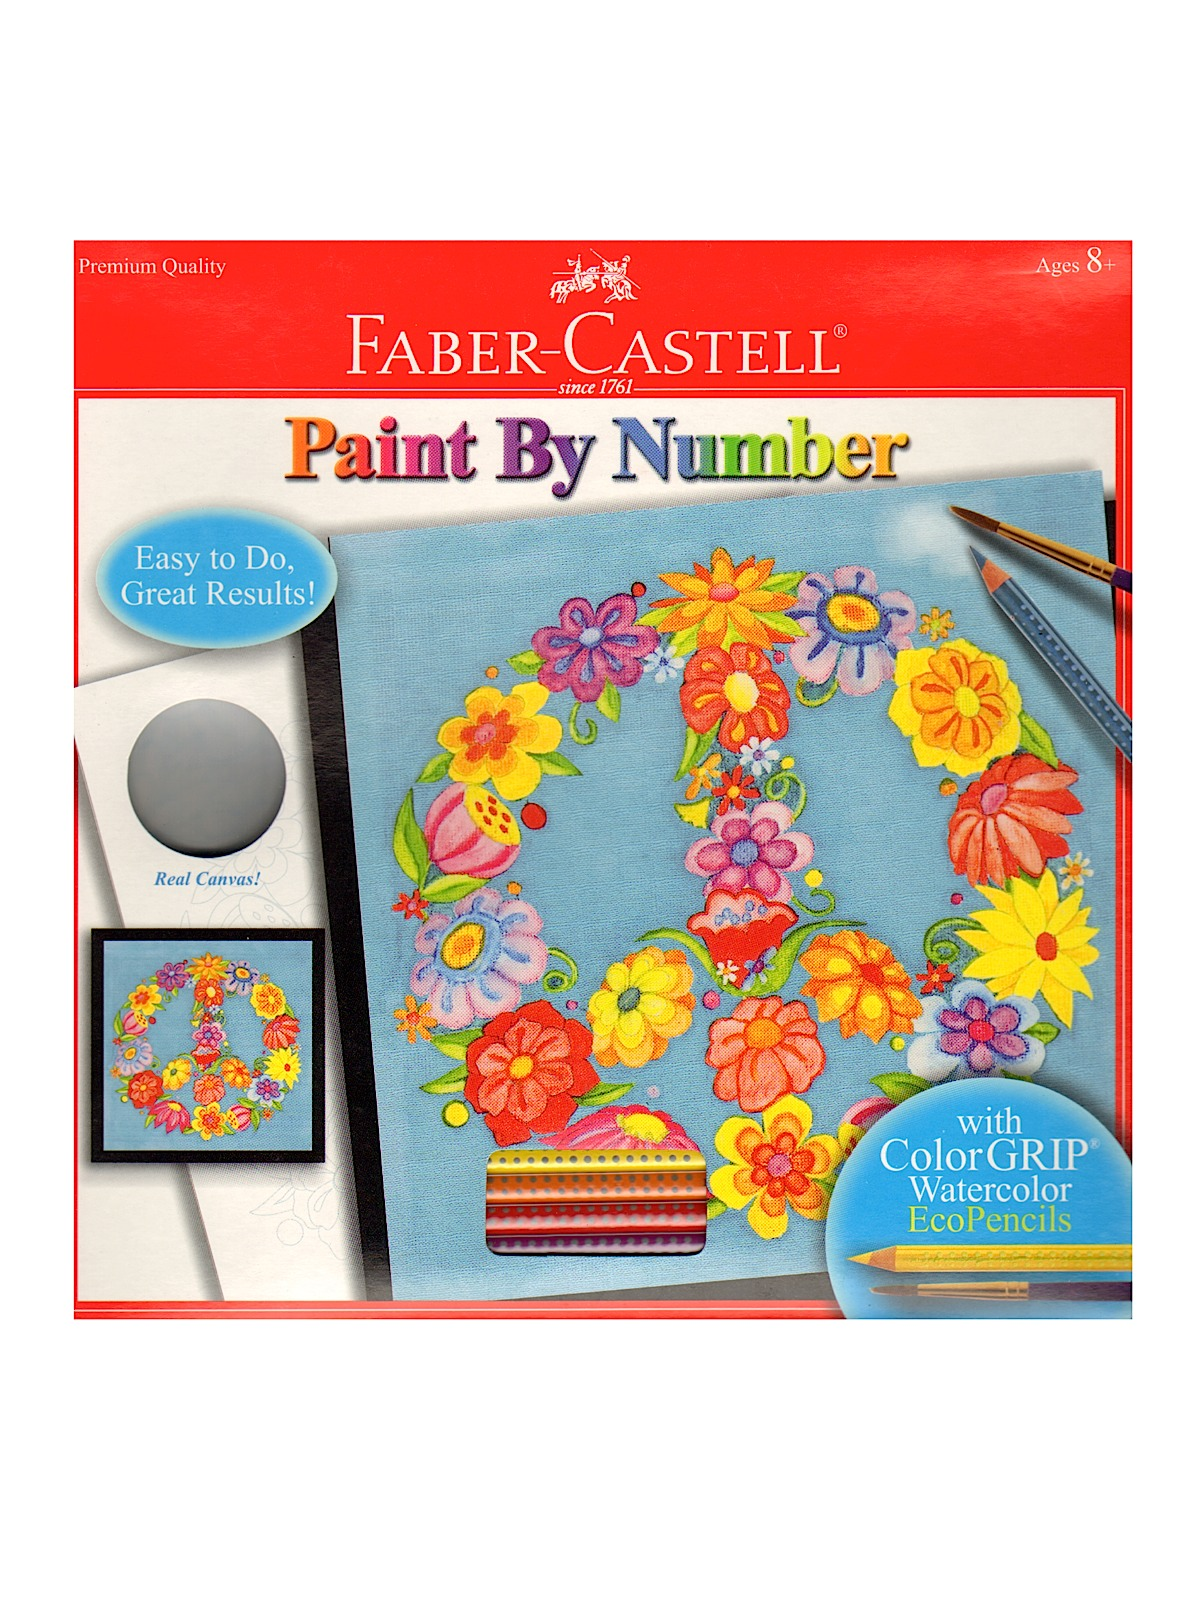 Faber Castell Paint By Number With Watercolor Pencils Kits